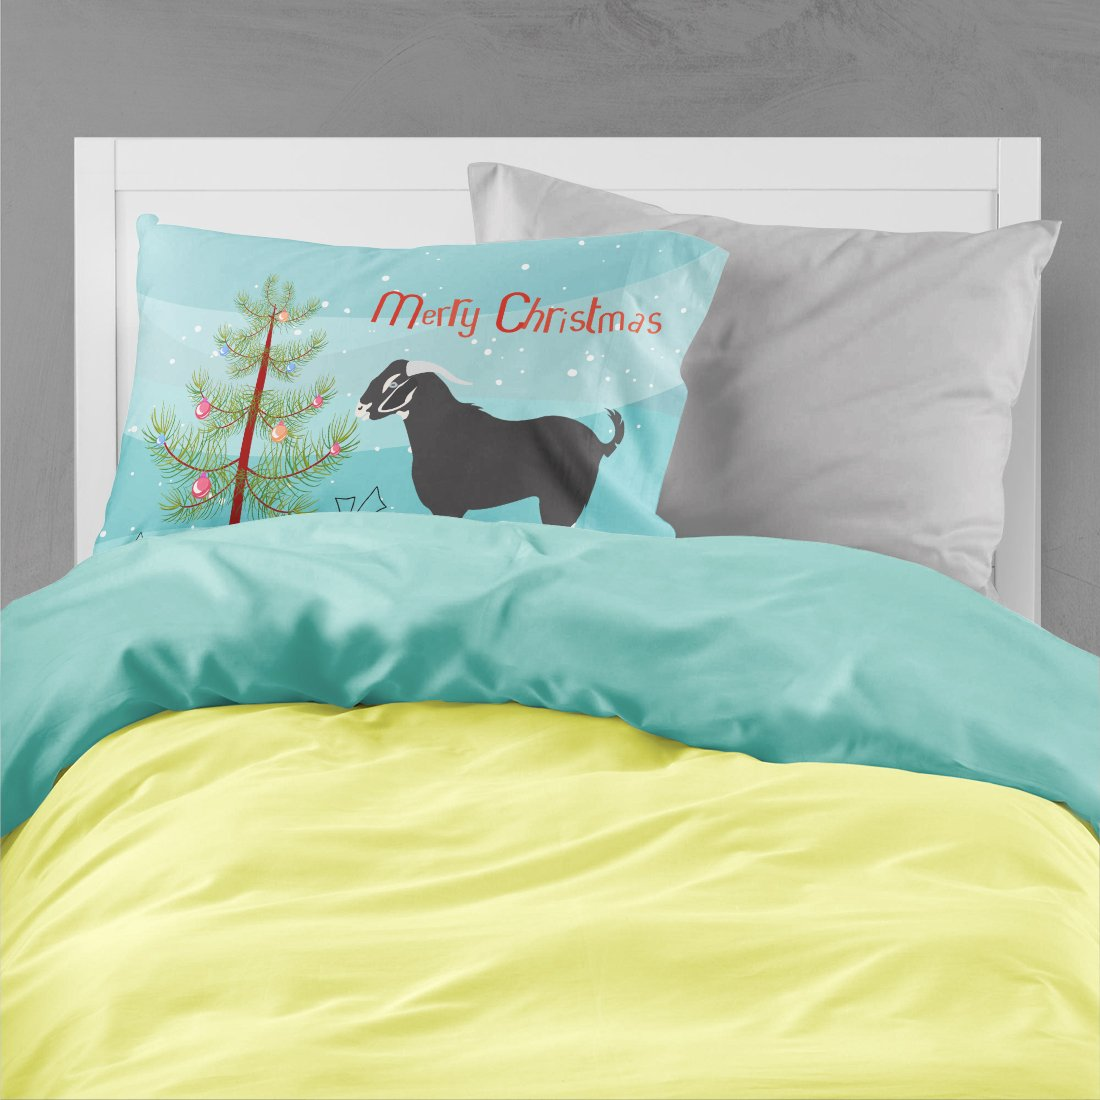 Black Bengal Goat Christmas Fabric Standard Pillowcase BB9251PILLOWCASE by Caroline's Treasures